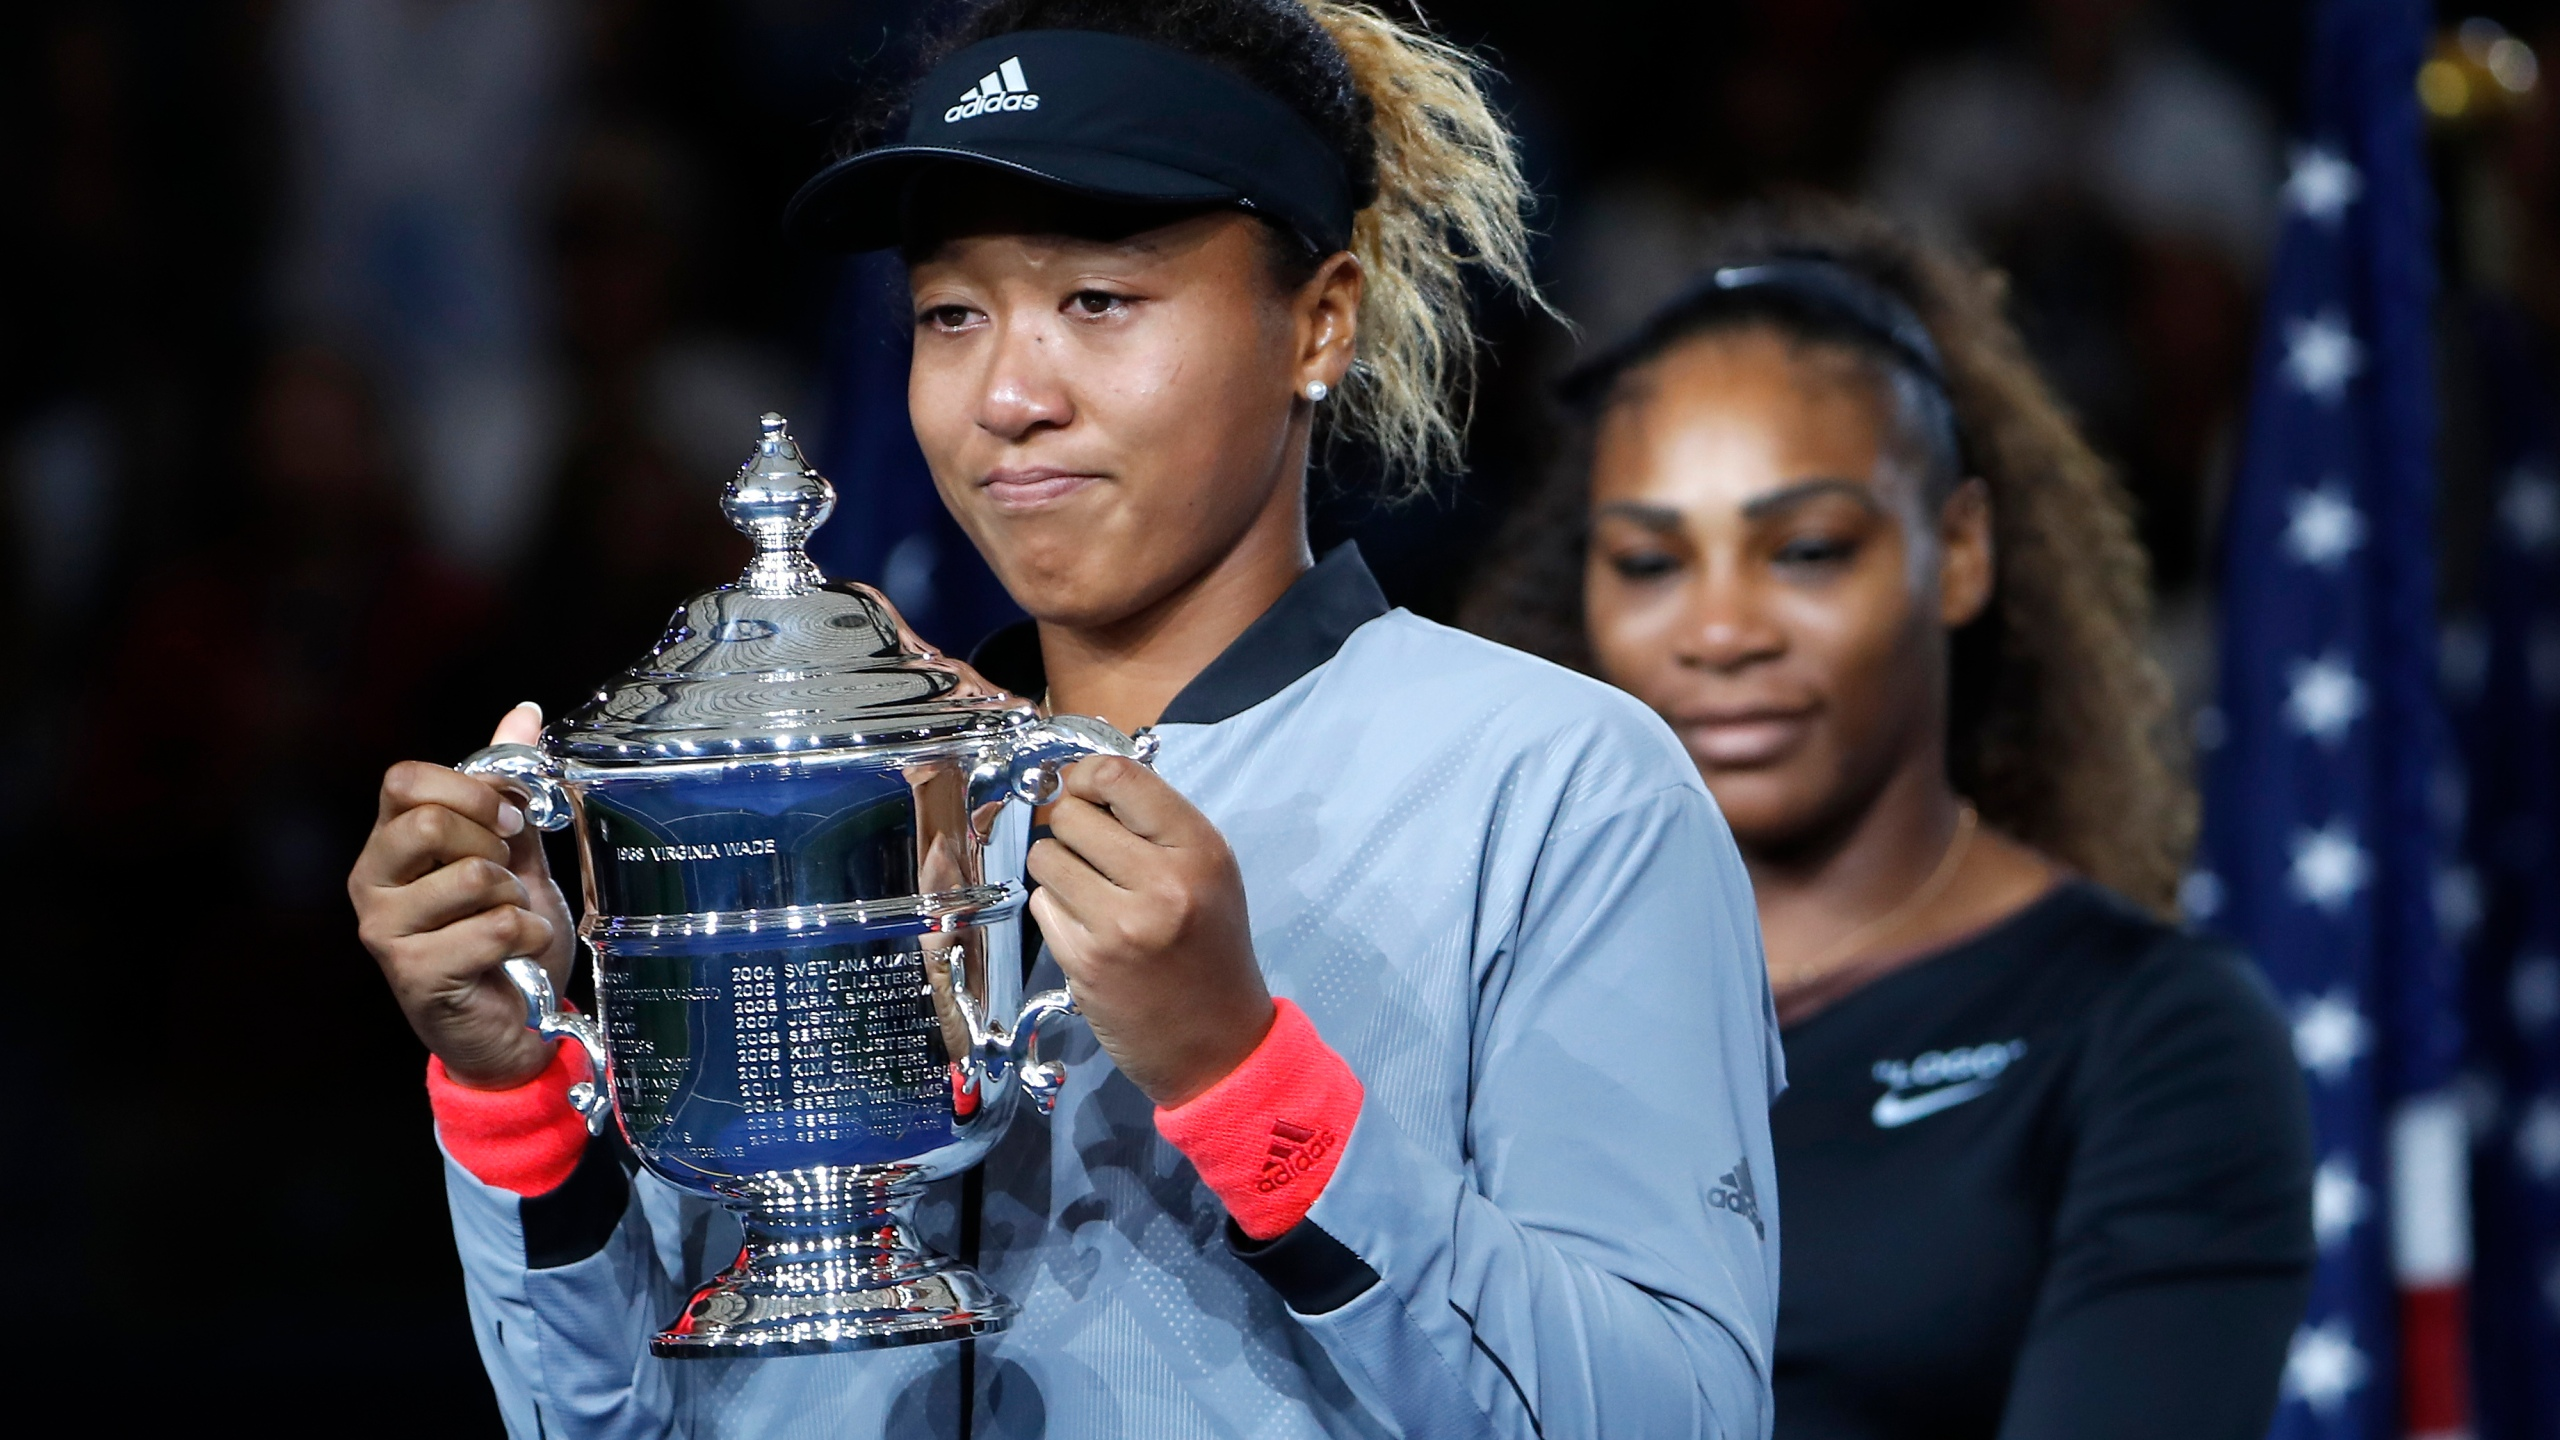 Naomi Osaka, of Japan, holds the trophy after defeating Serena Williams, rear, in the women's final of the U.S. Open tennis tournament in New York on Sept. 8, 2018. (Adam Hunger/Associated Press)